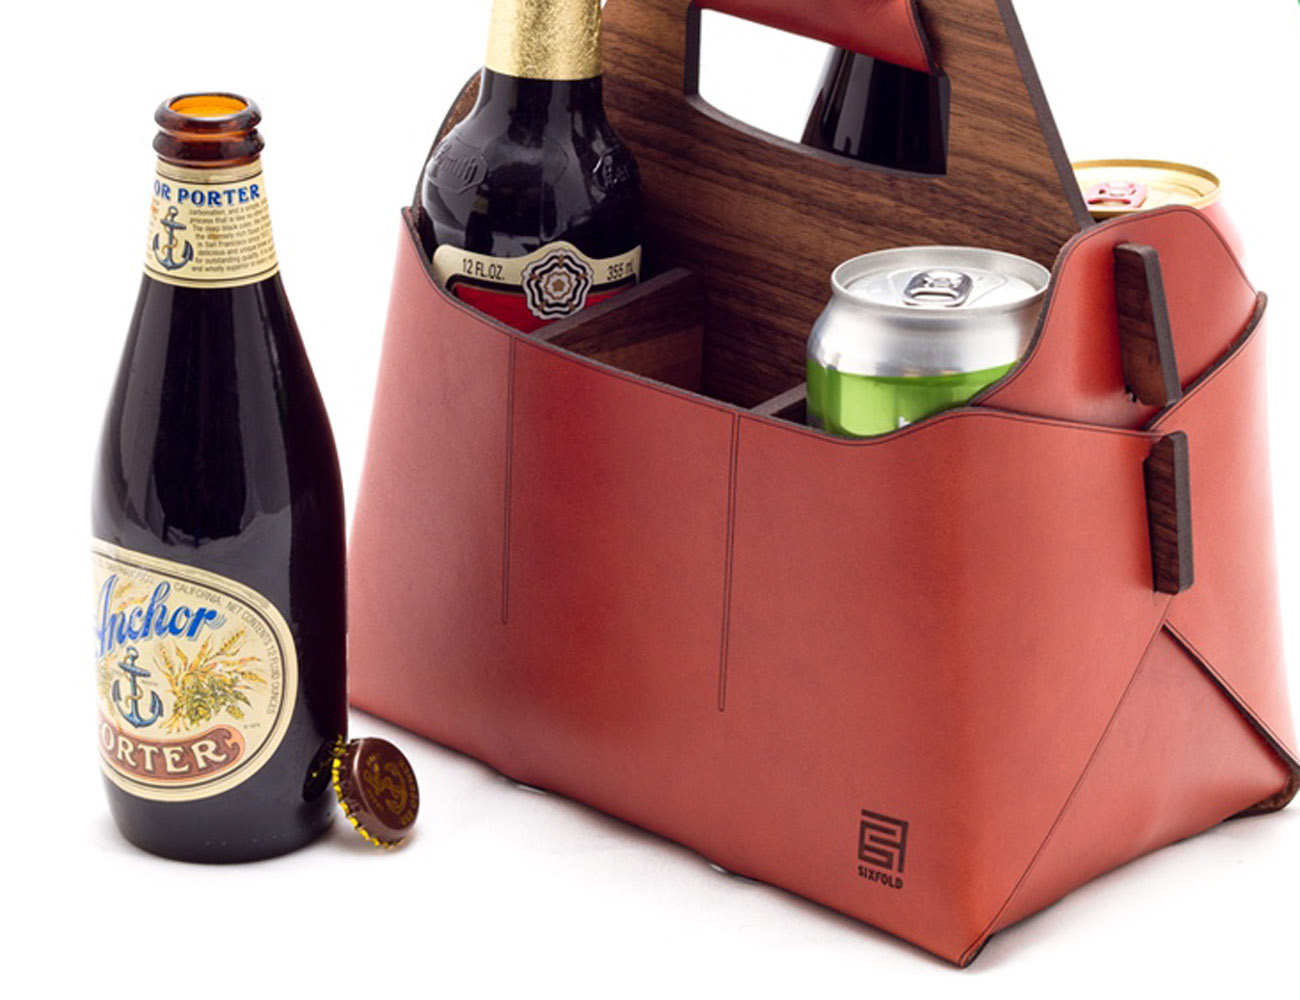 Sixfold – Well Crafted Carrier For Beer & Wine